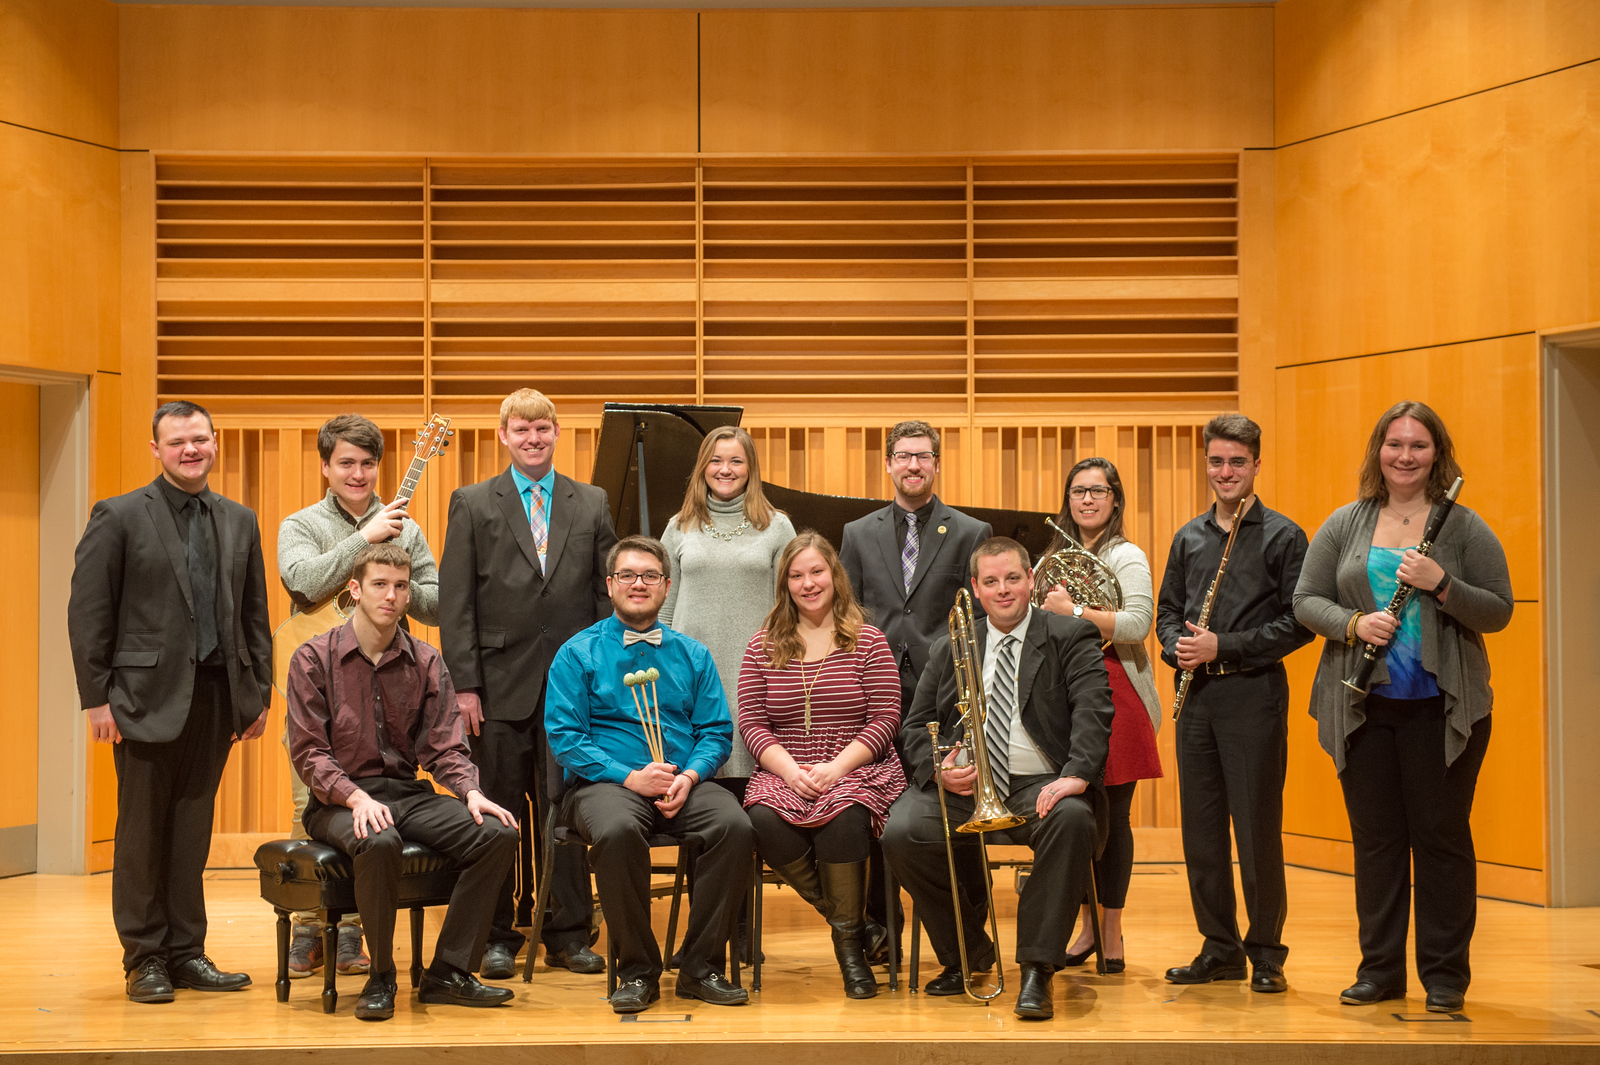 President's Concert to feature university's finest musicians